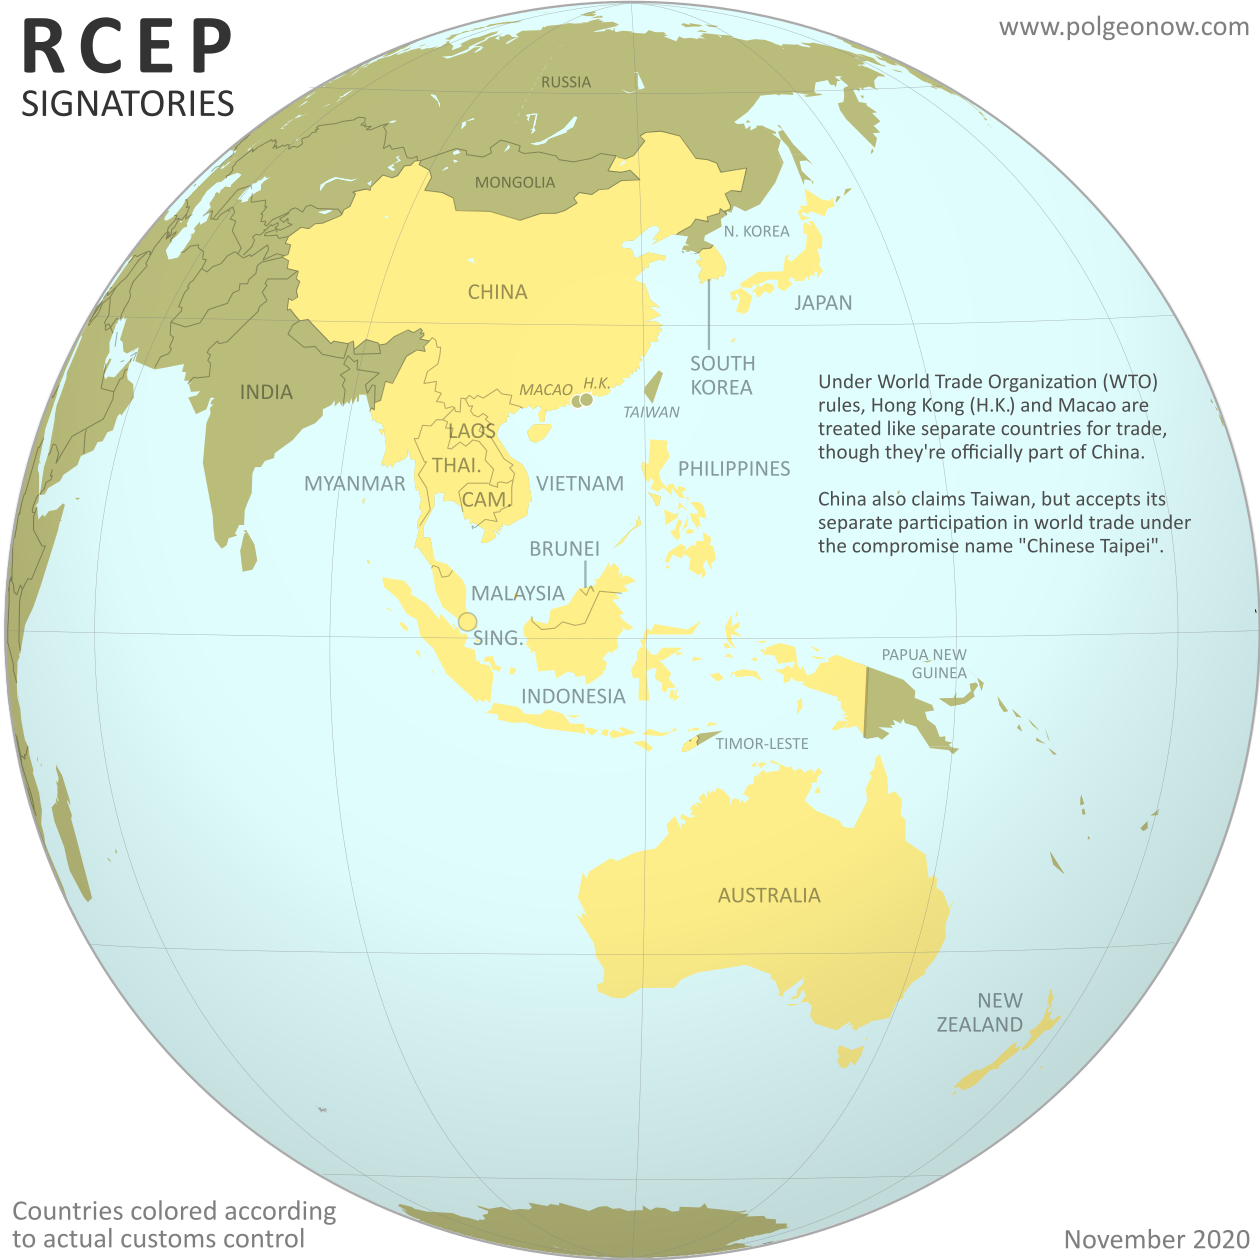 Globe-style map of which countries have signed the RCEP (Regional Comrehensive Economic Partnership) agreement (colorblind accessible).